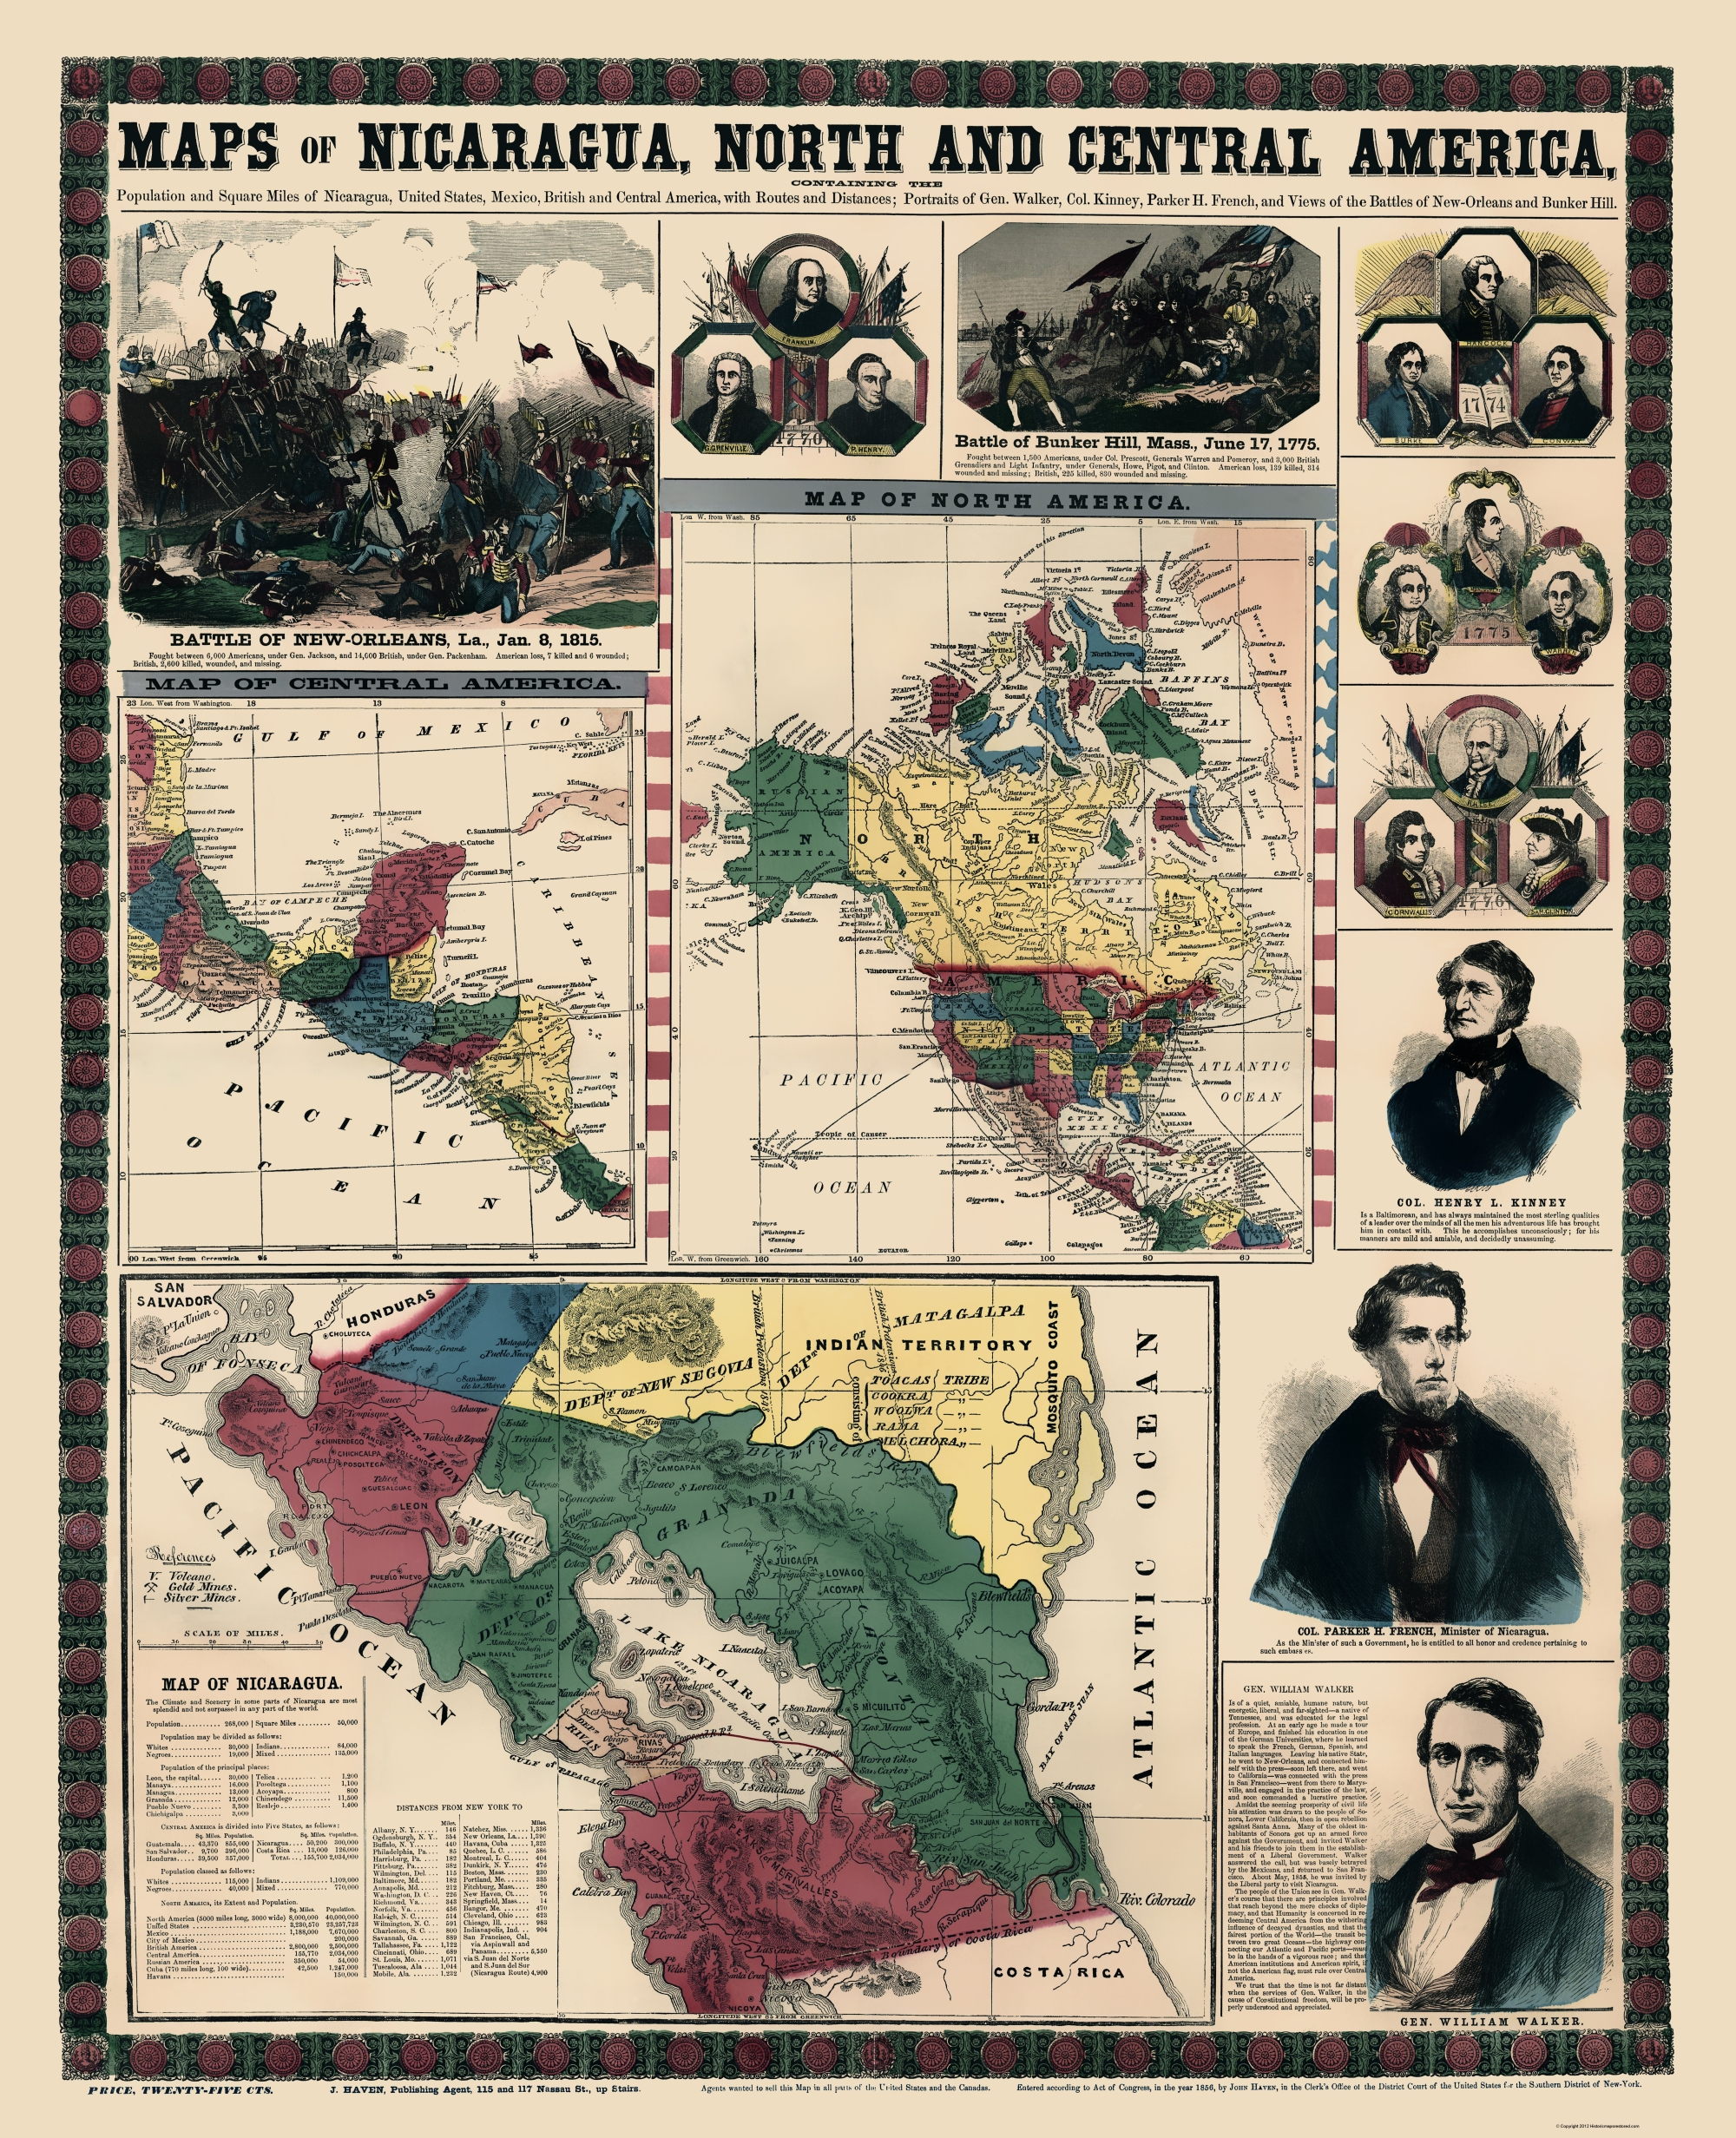 Nicaragua North Central America Haven 1856-23 x 28